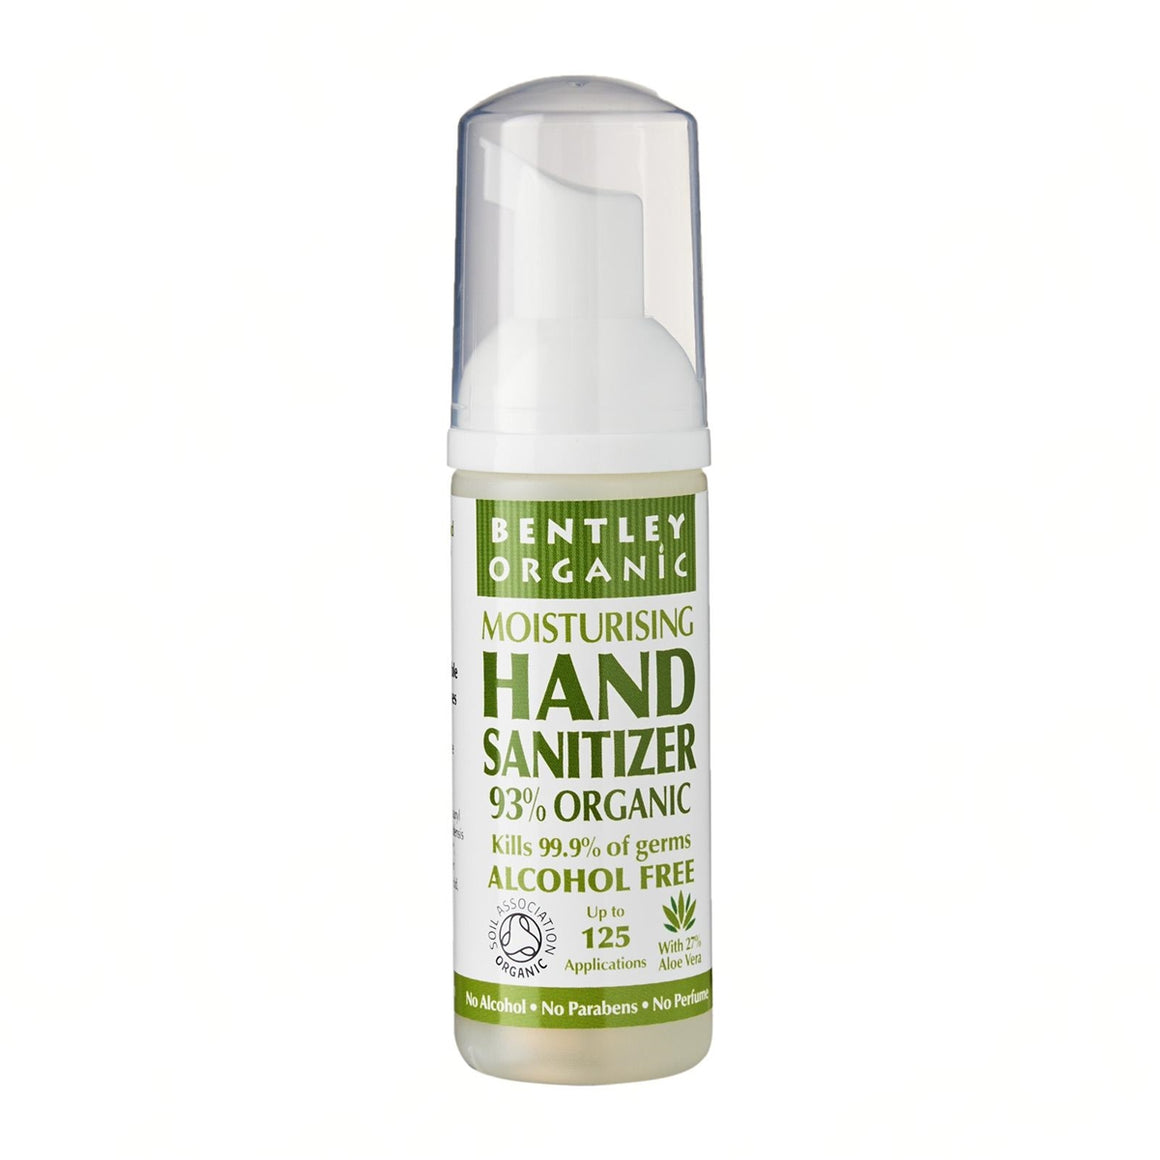 Bentley Organic : Hand Sanitiser